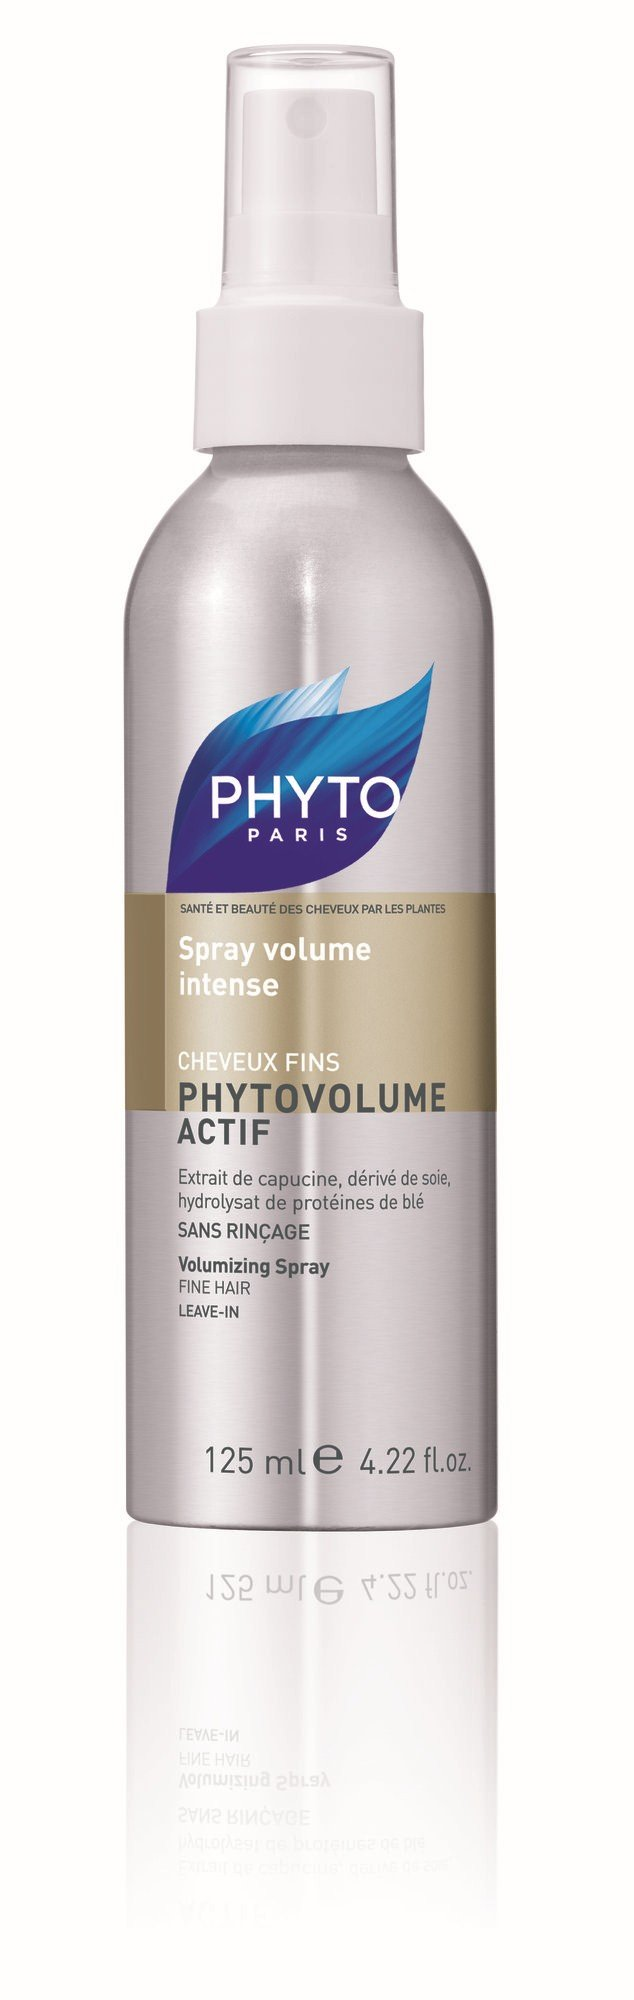 phyto-phytovolume-actif-volumizing-hair-spray-cosmetics-online